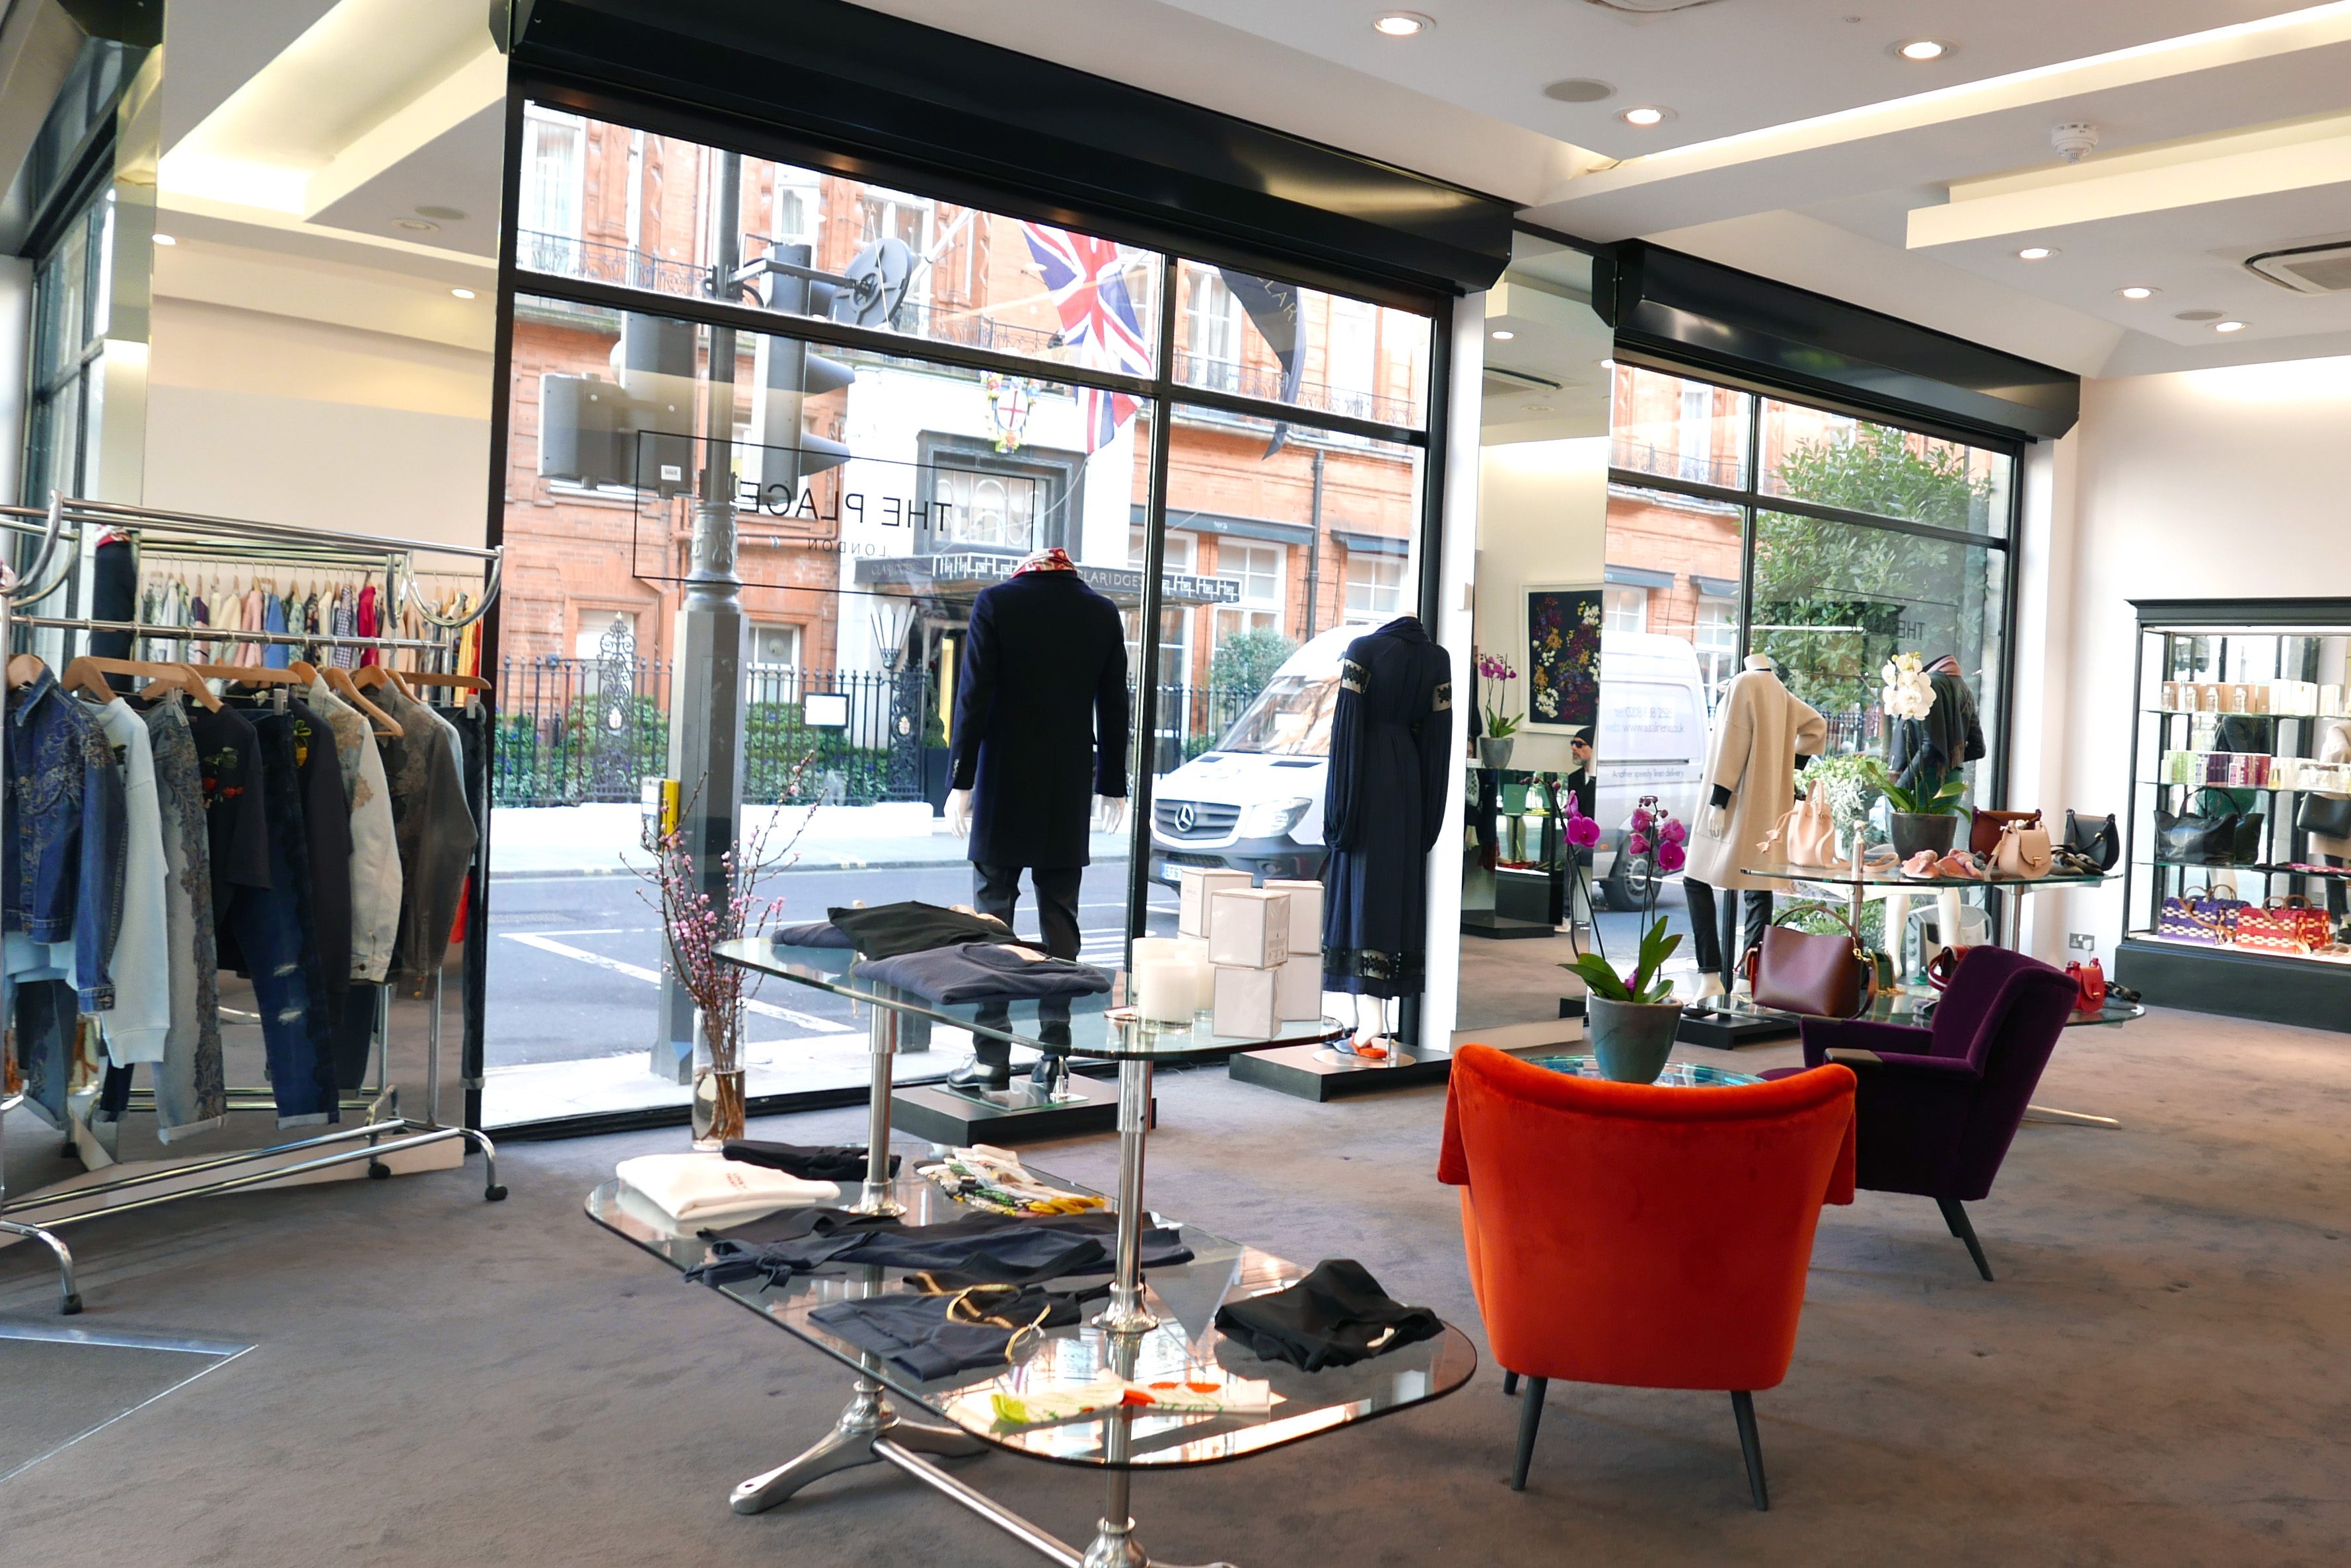 A view of the new store The Place by Simon Burstein